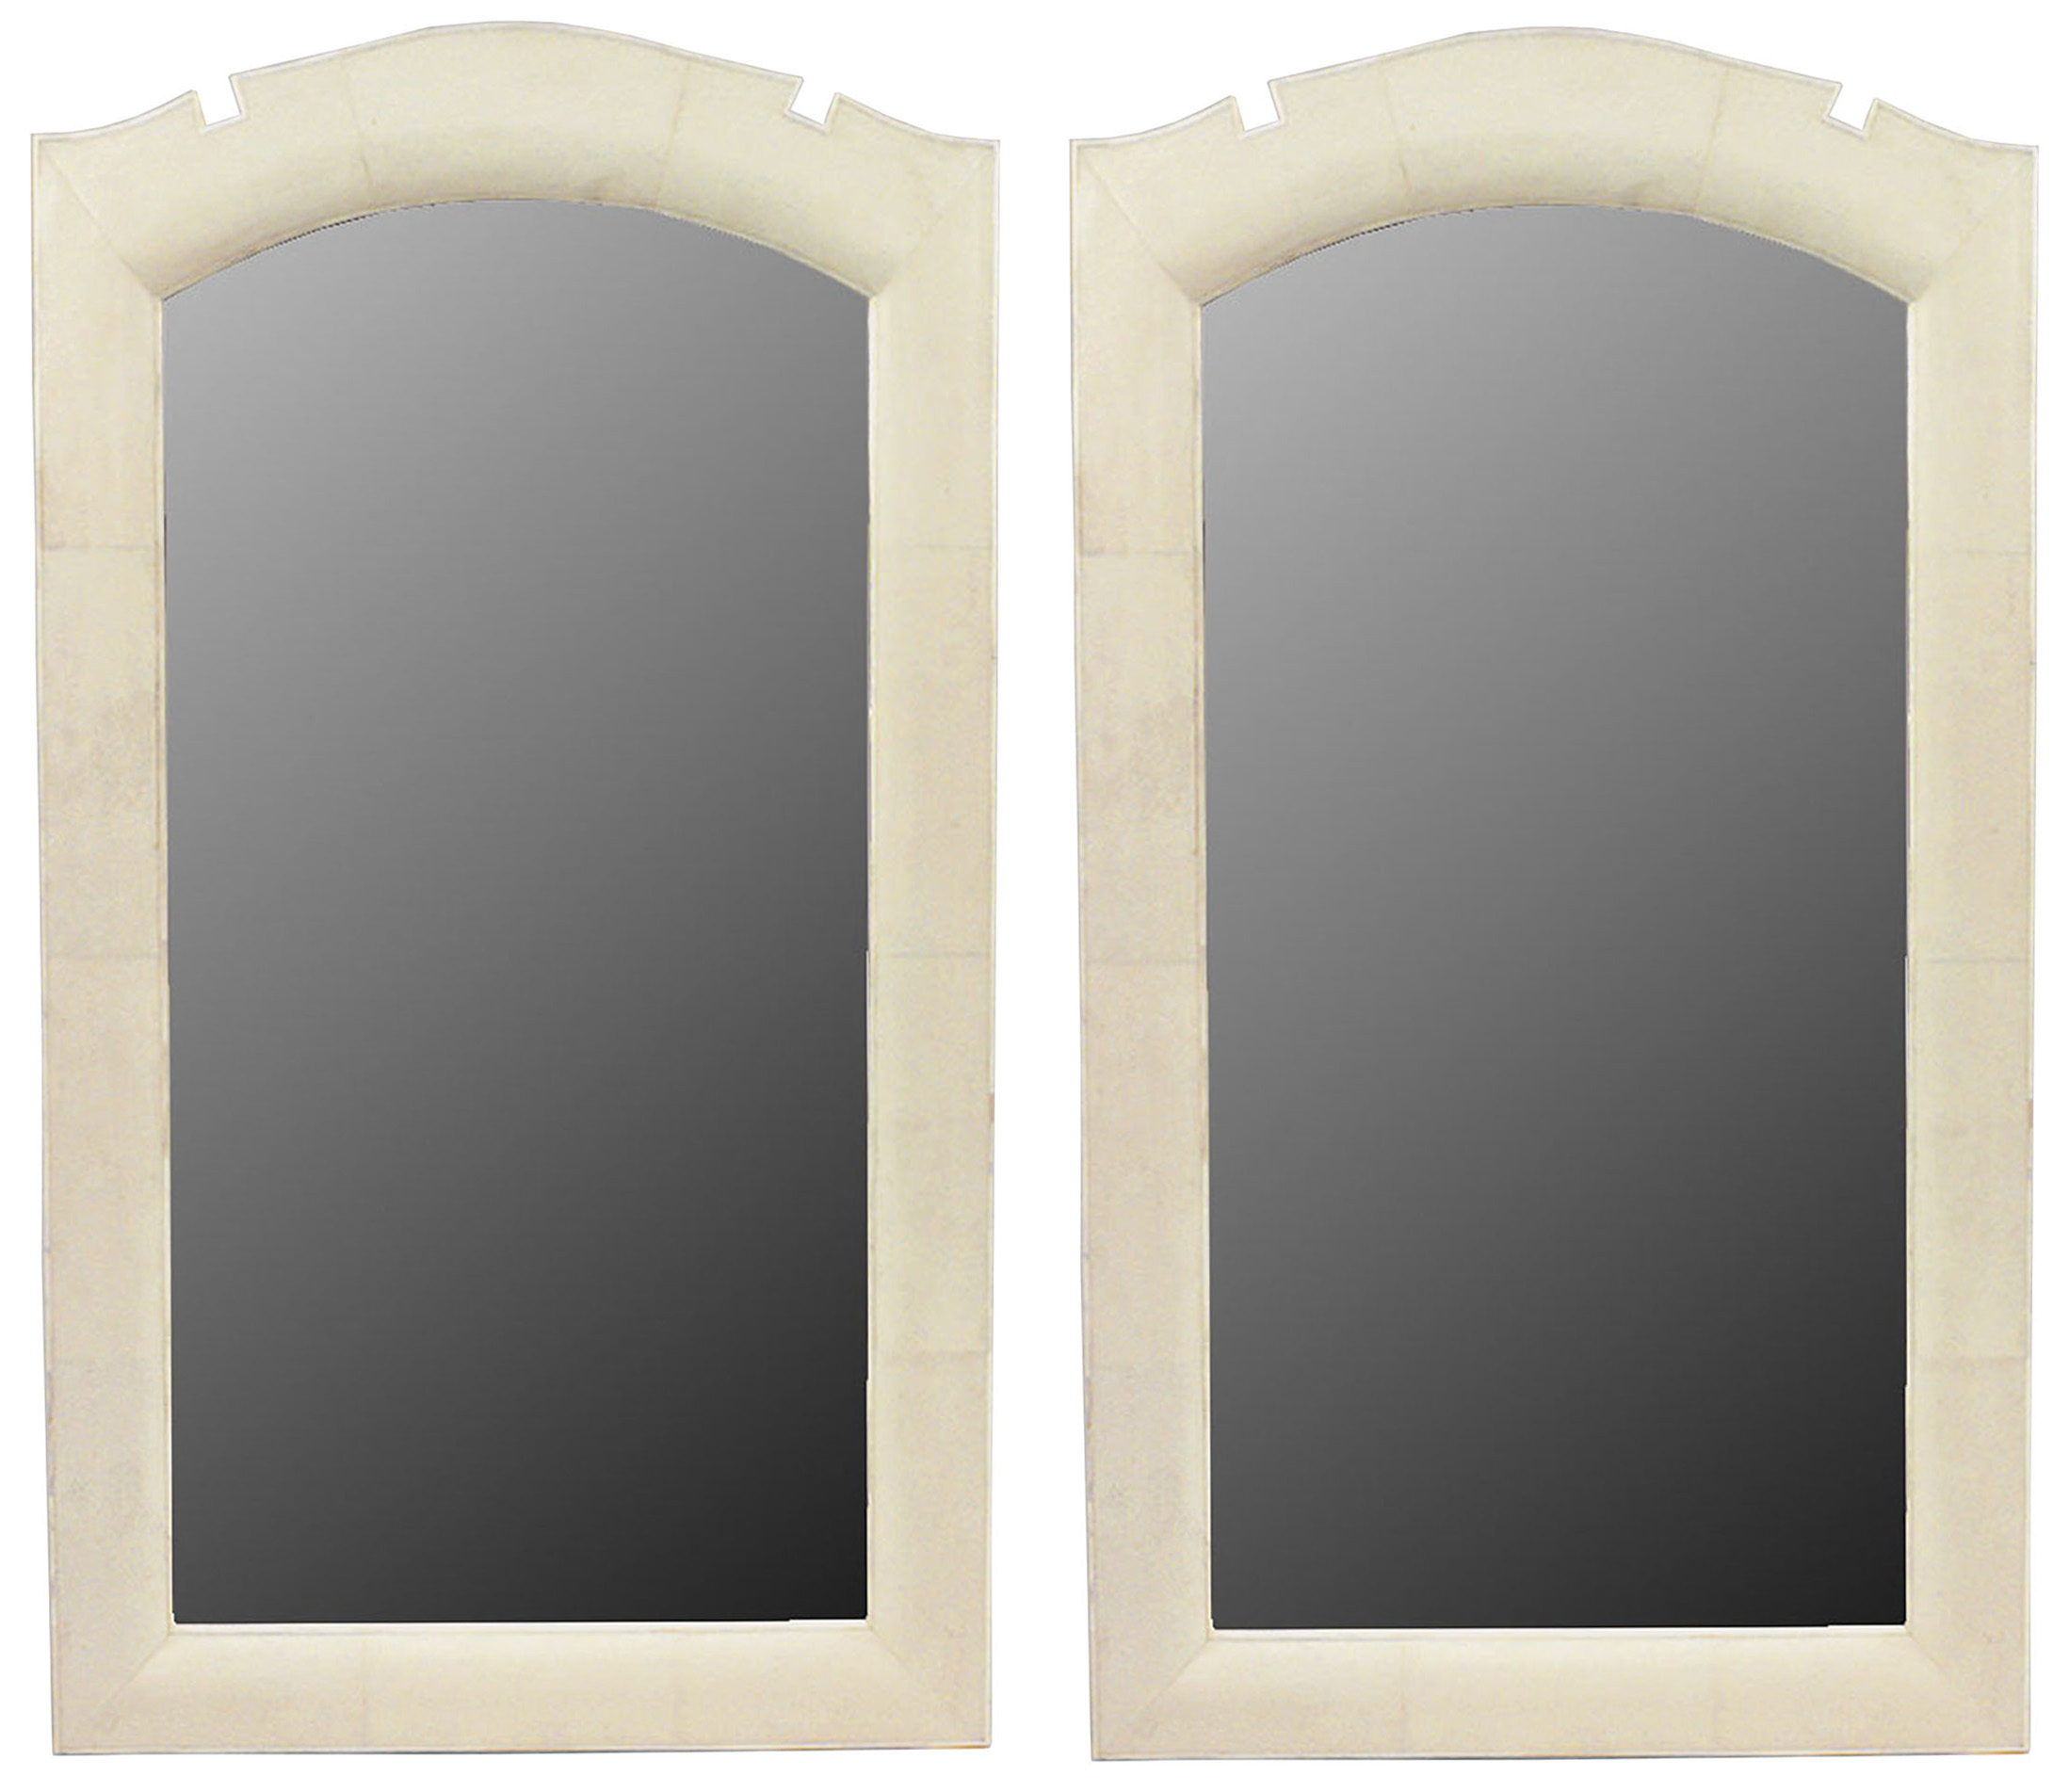 French Art Deco Style Beige Shagreen Wall Mirrors | Newel With Regard To Arch Top Vertical Wall Mirrors (Image 13 of 20)